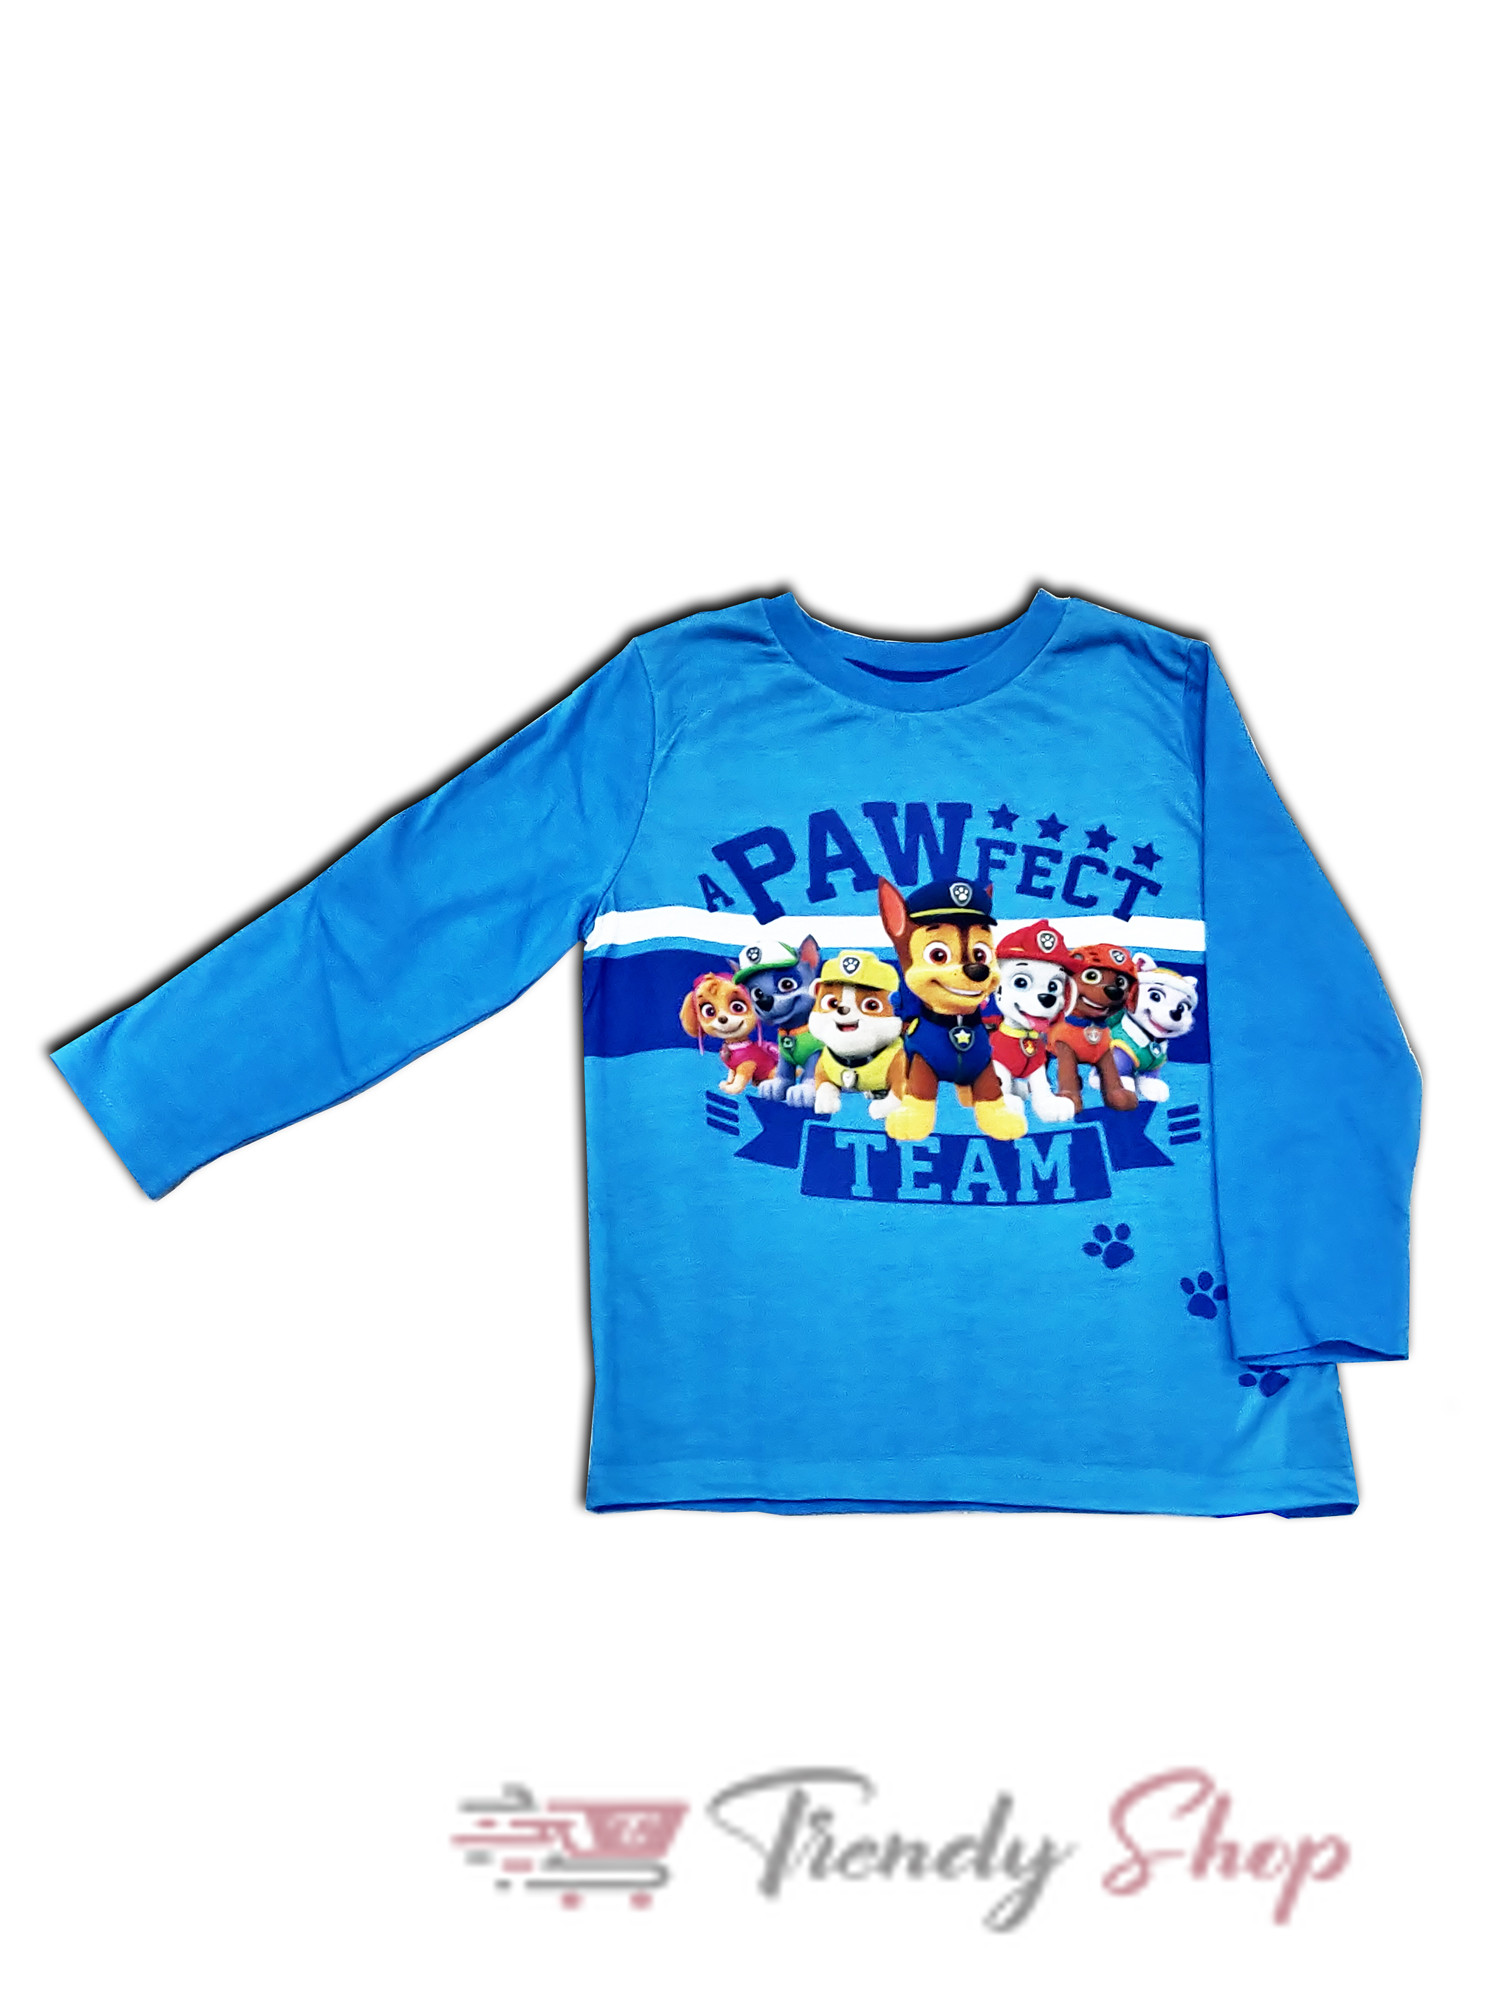 Pawfect T shirt for kids